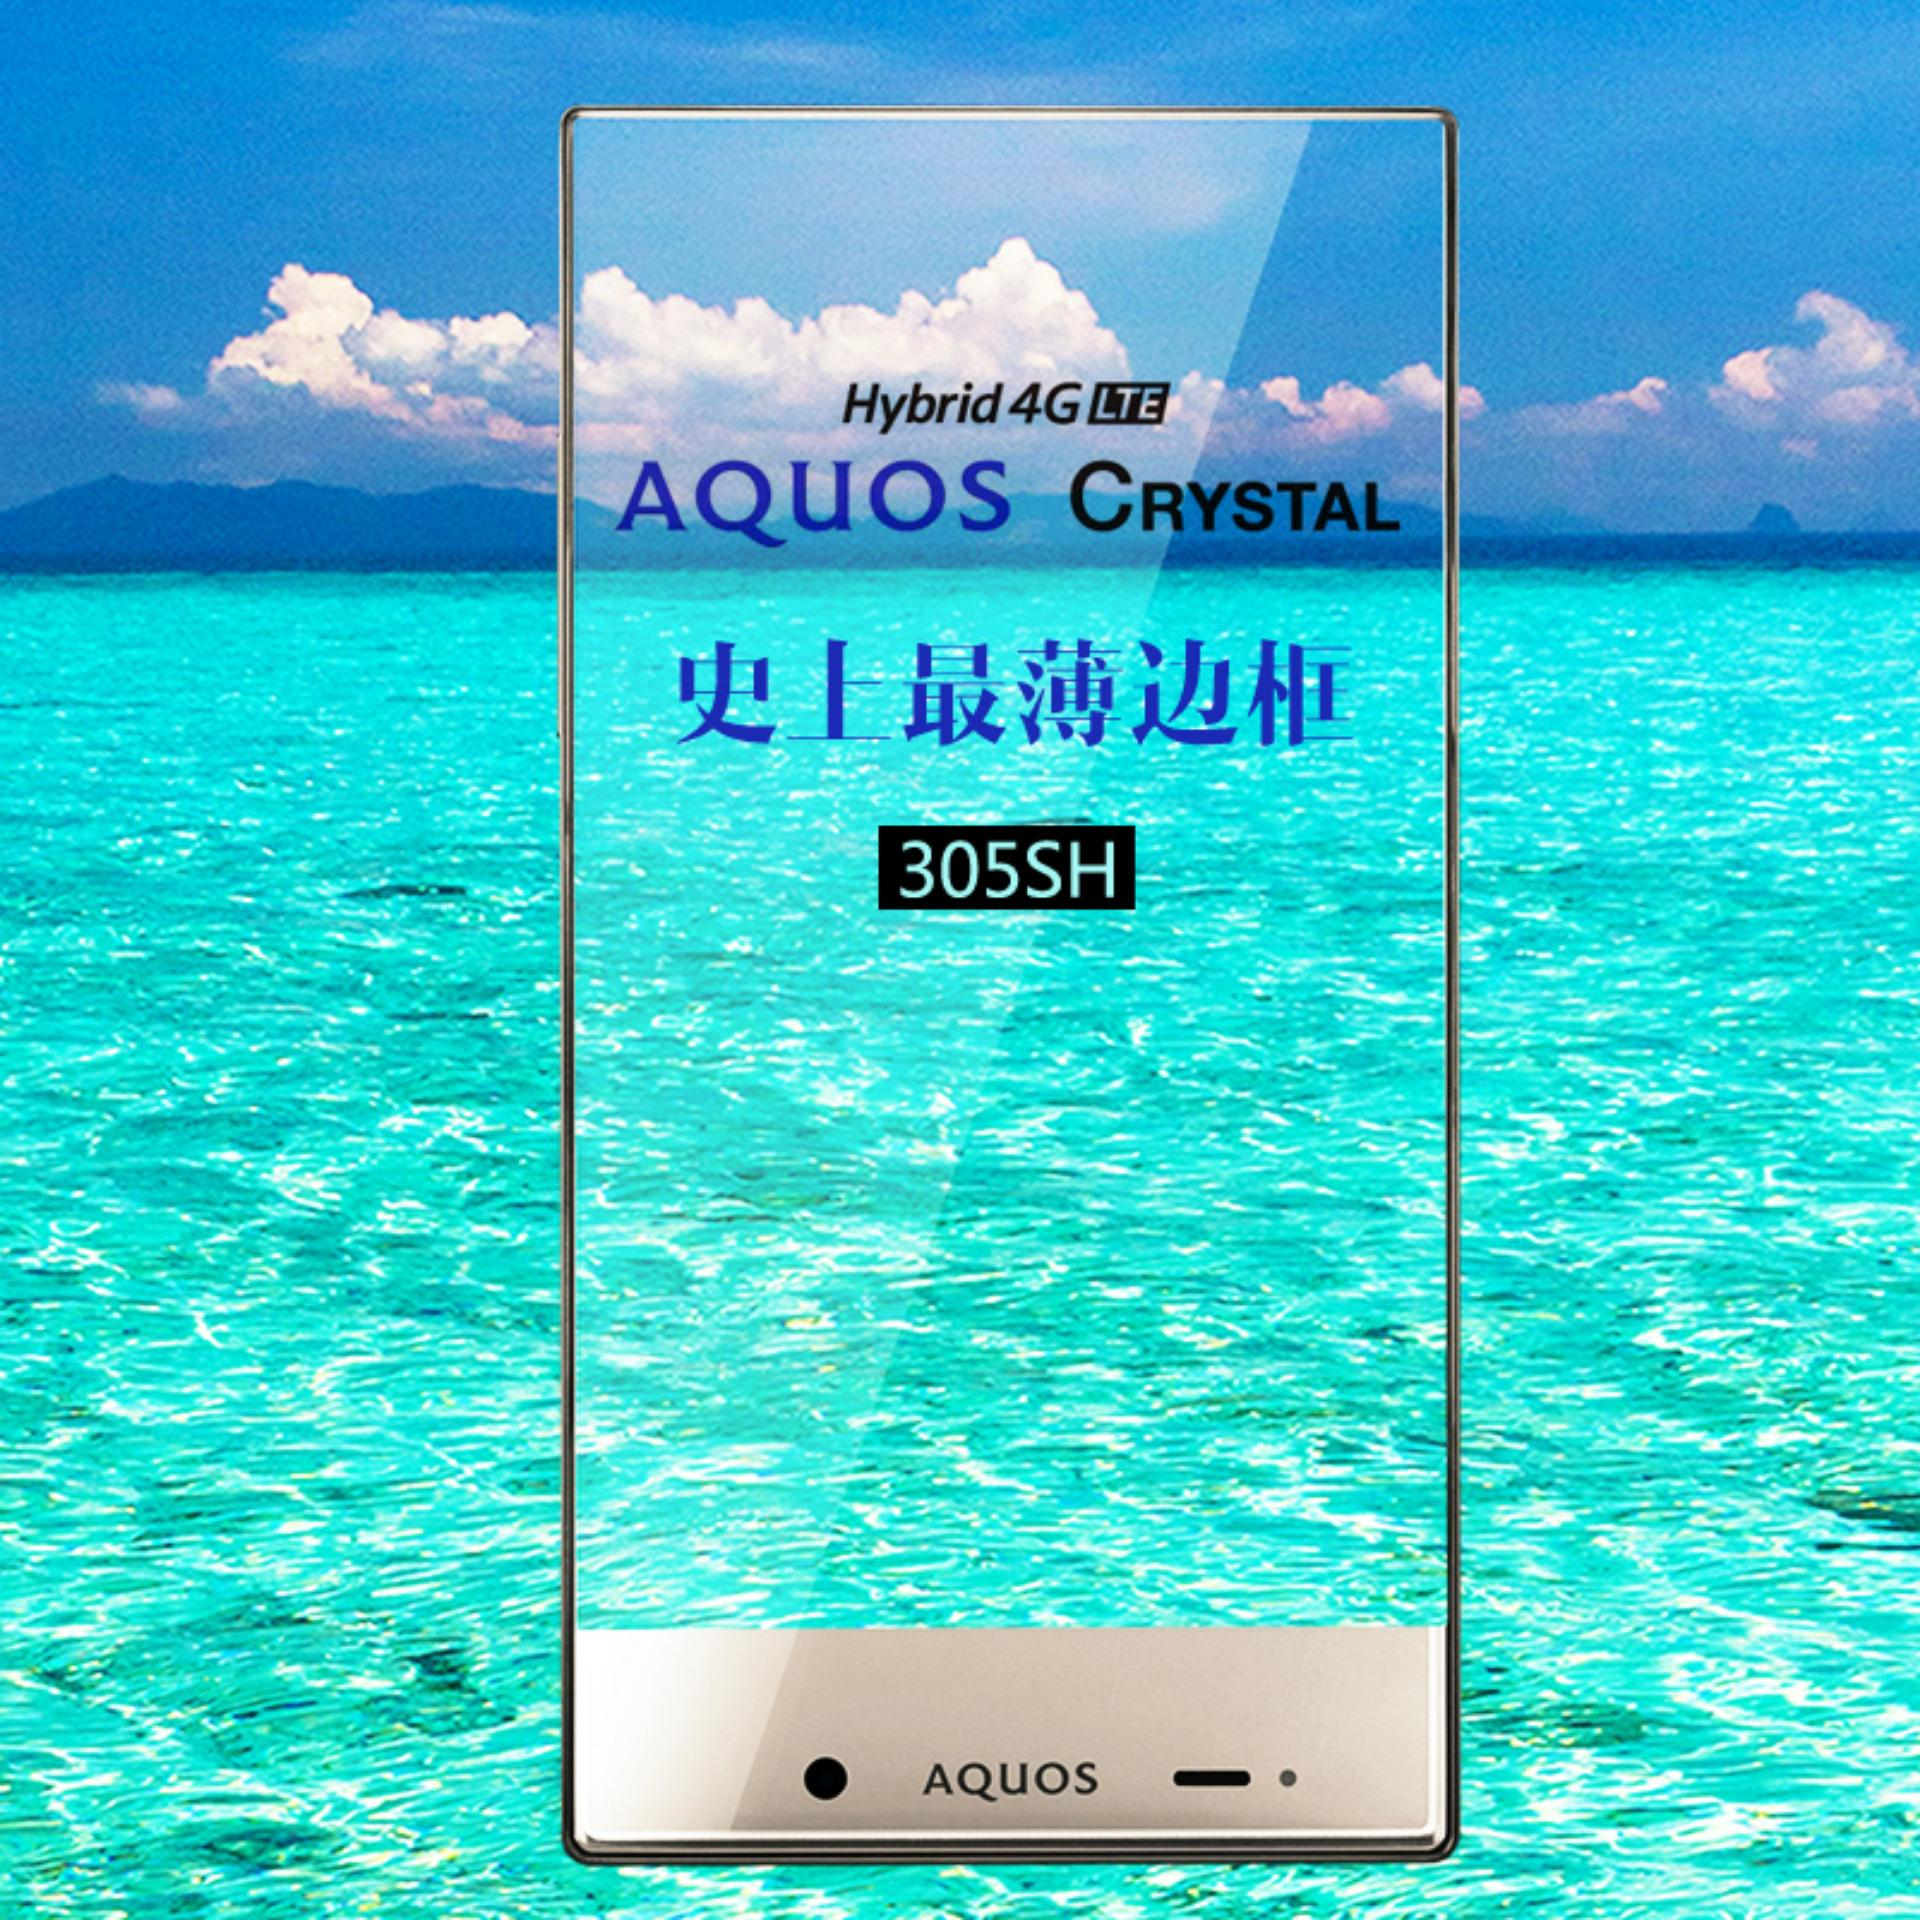 SHARP AQUOS CRYSTAL 305SH ~ 4G LTE ~ 8GB